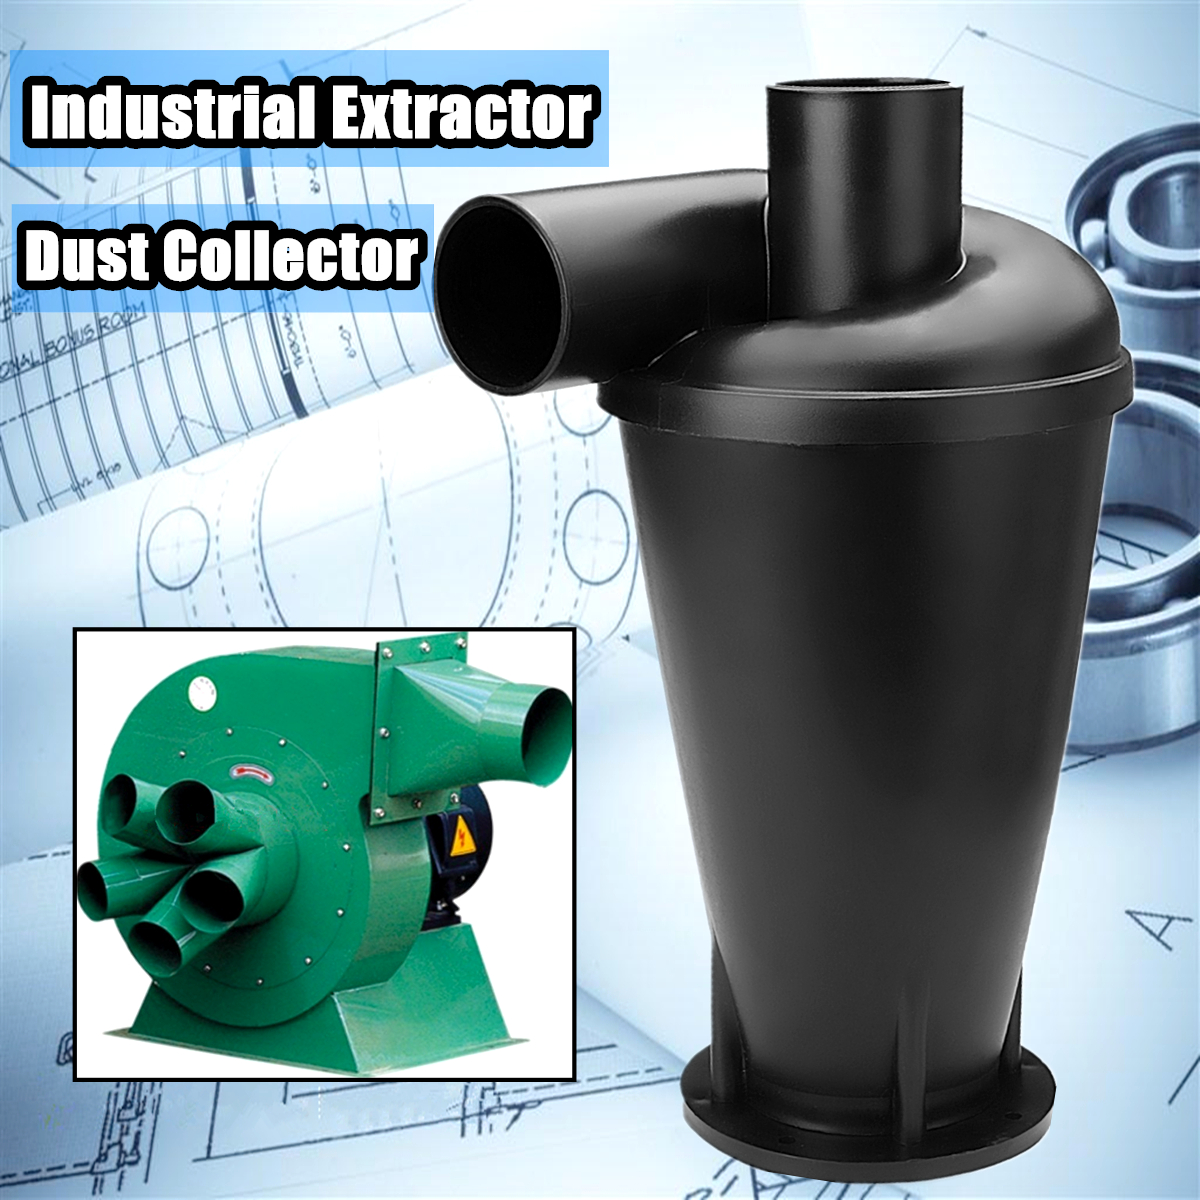 Industrial Extractor Dust Collector Woodworking Vacuum Cleaner Filter Dust Separation